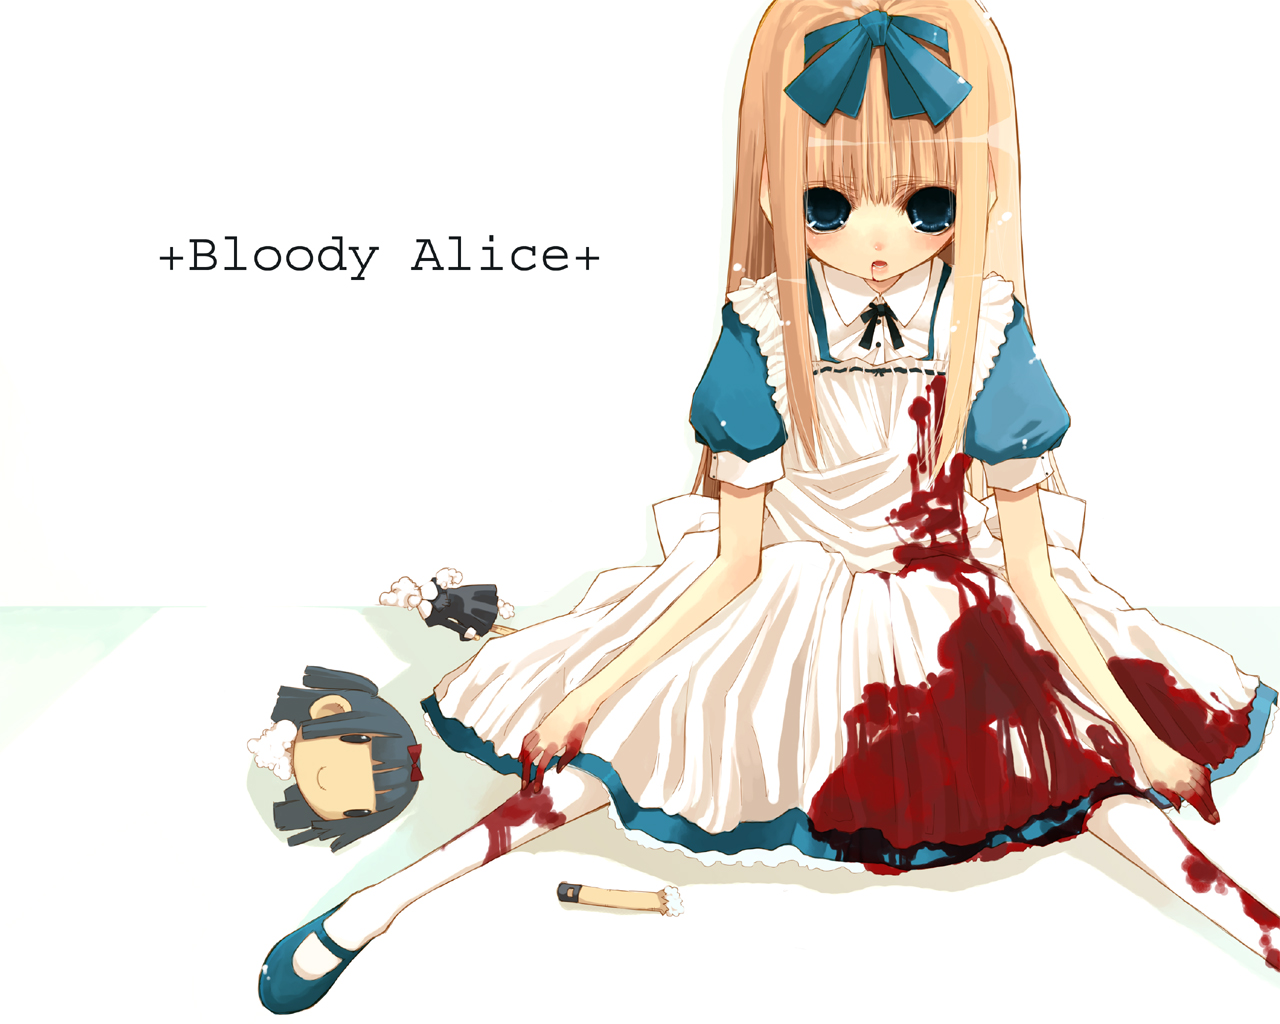 Tags: Alice In Wonderland, Alice (Alice In Wonderland)